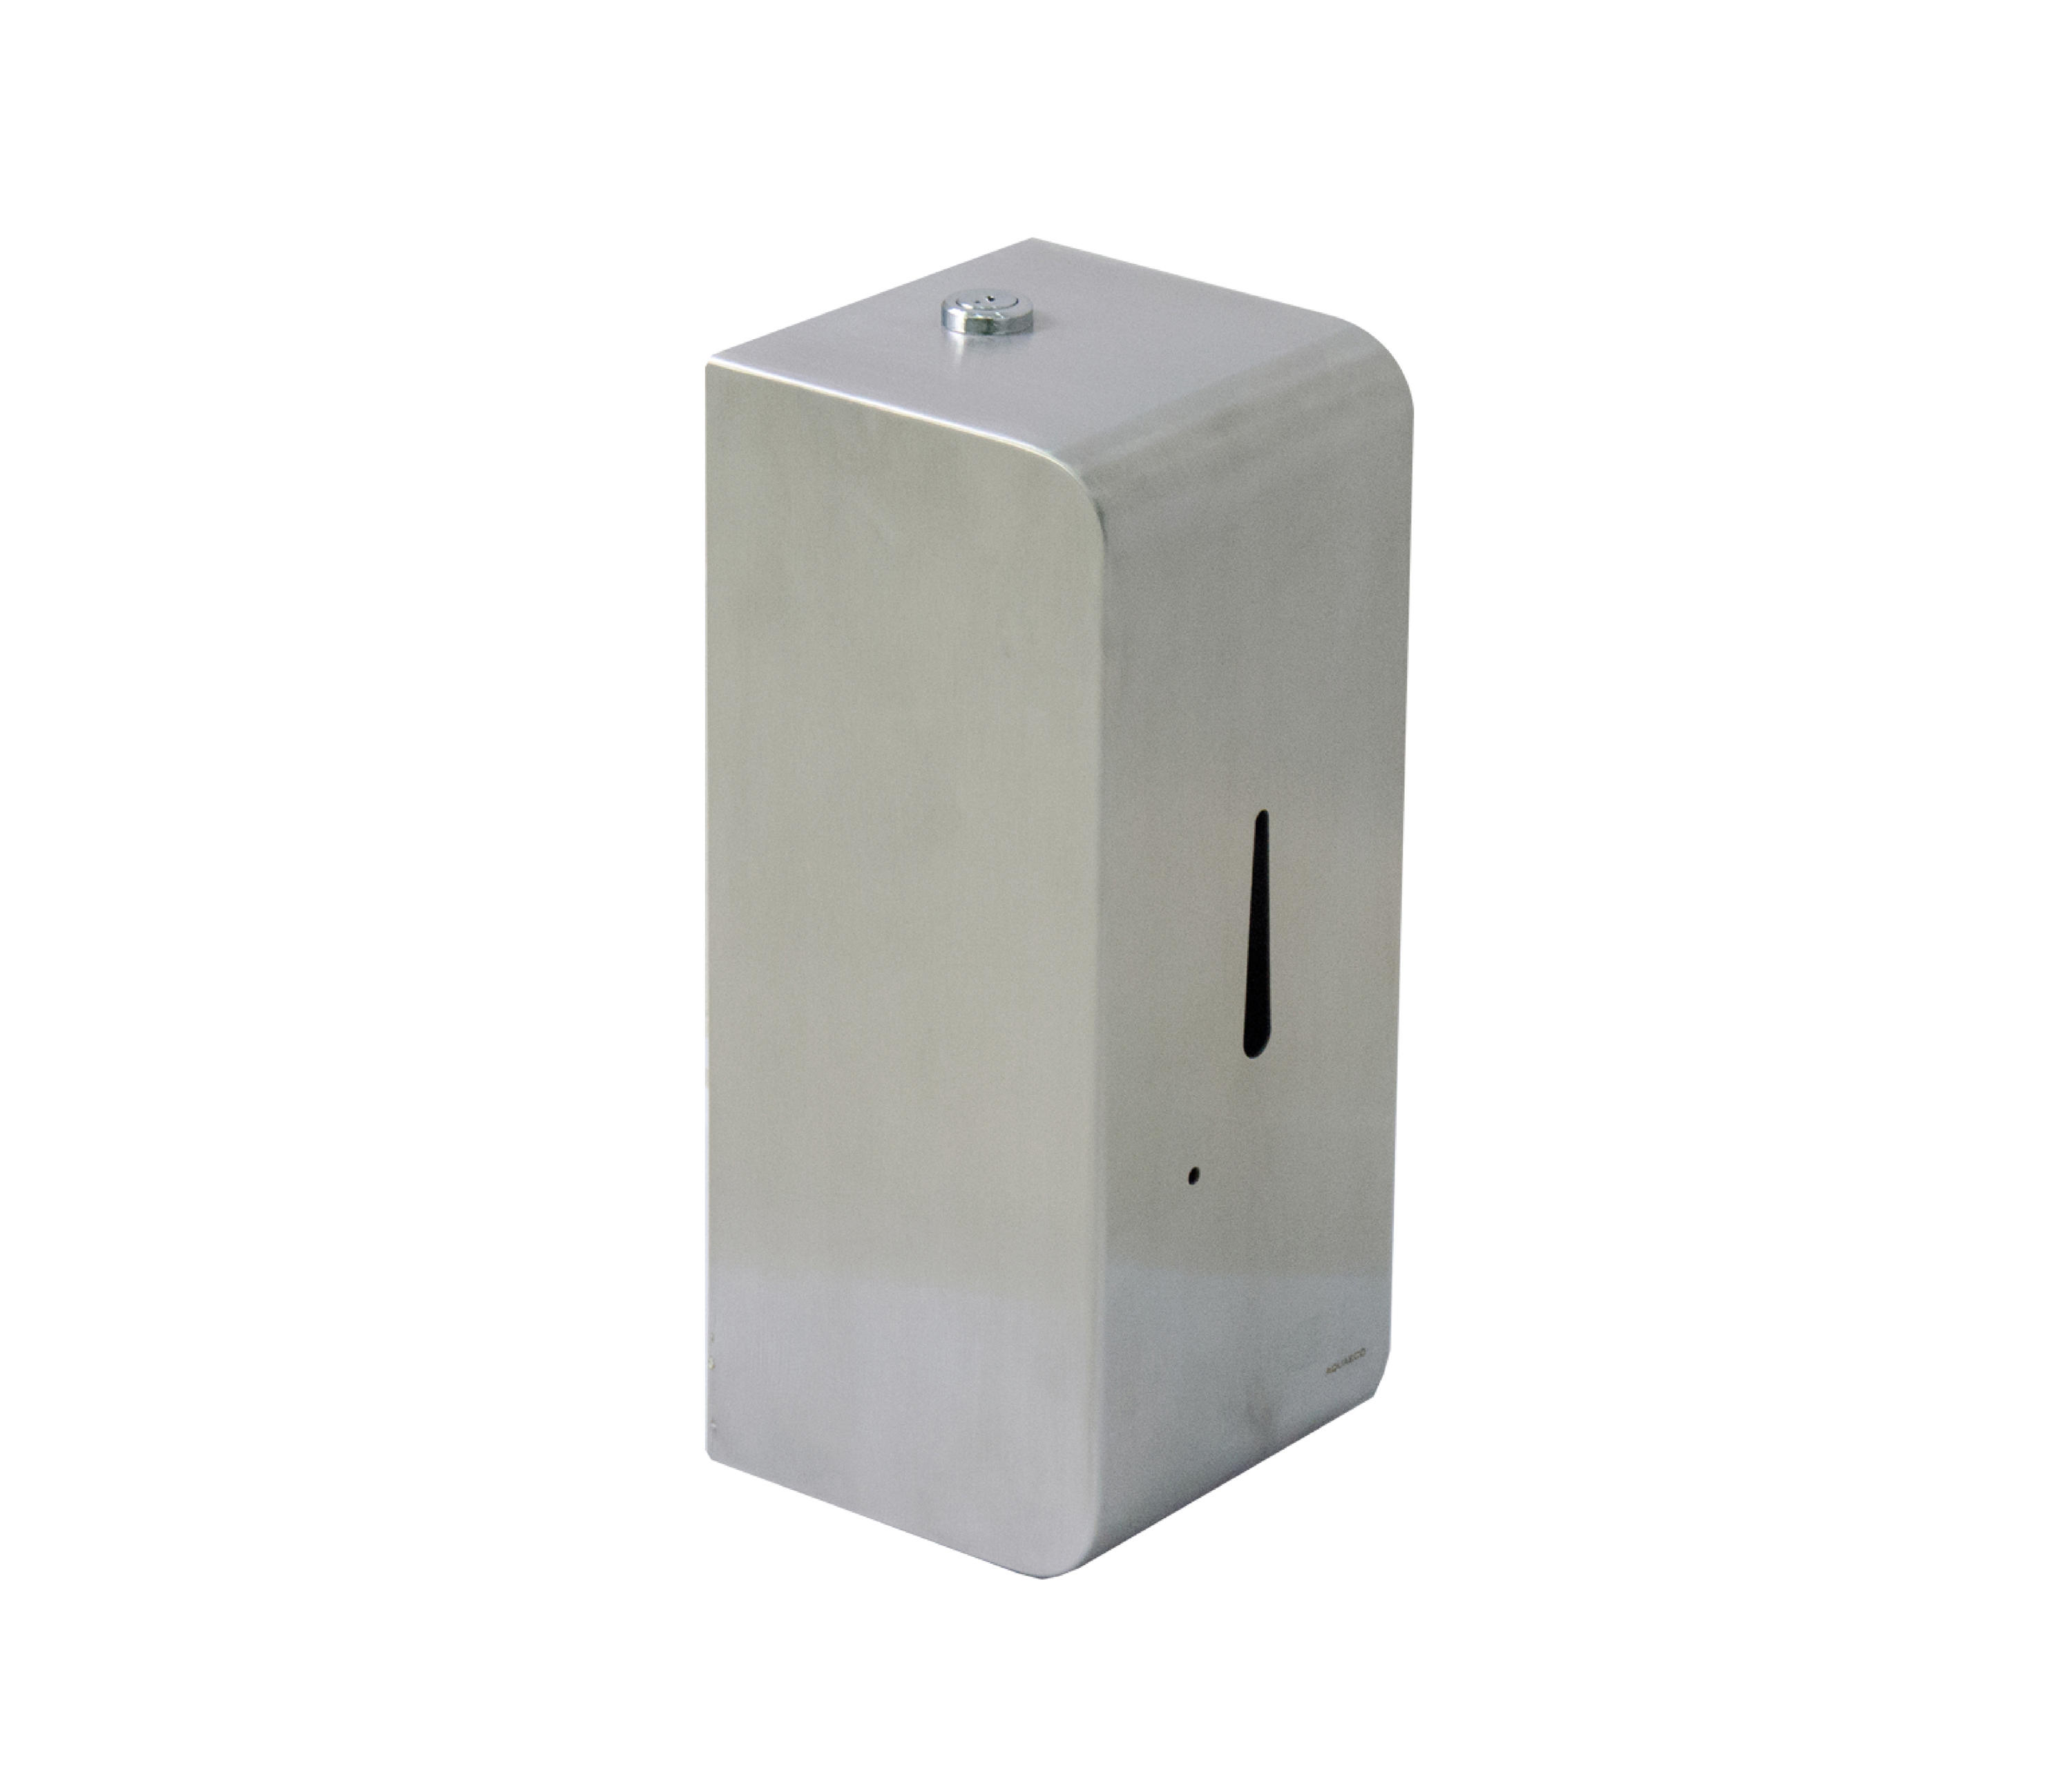 Wall Mounted Soap Dispenser Ix304 Wall Mounted Liquid Soap Dispenser With Infrared